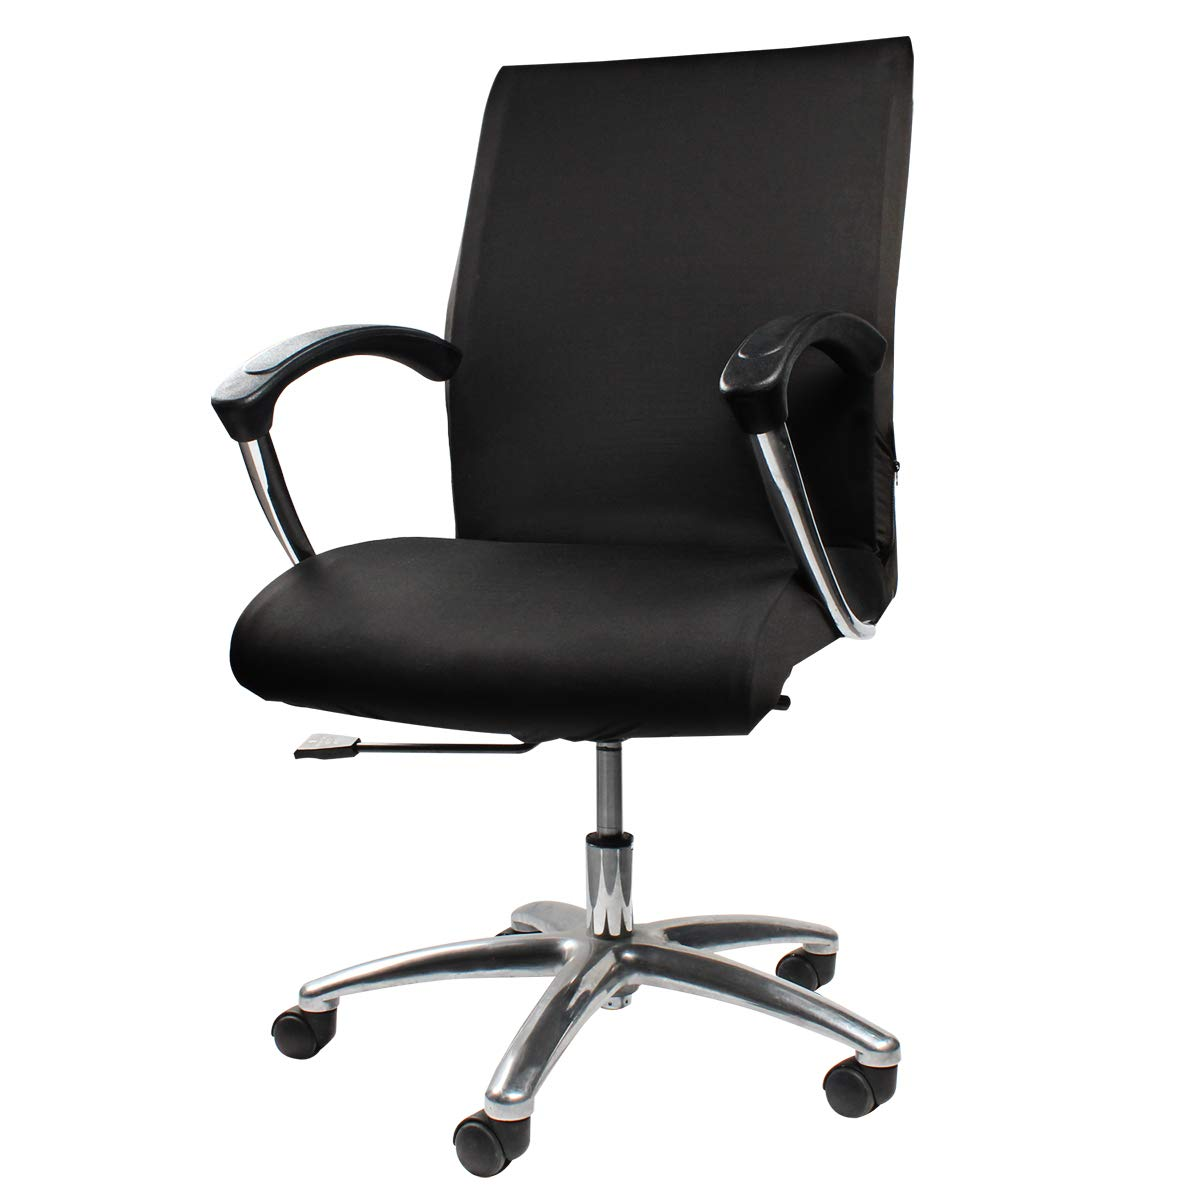 Soondeer Office Chair Cover Stretch Desk Chair Cover Protective Rotating Computer Chair